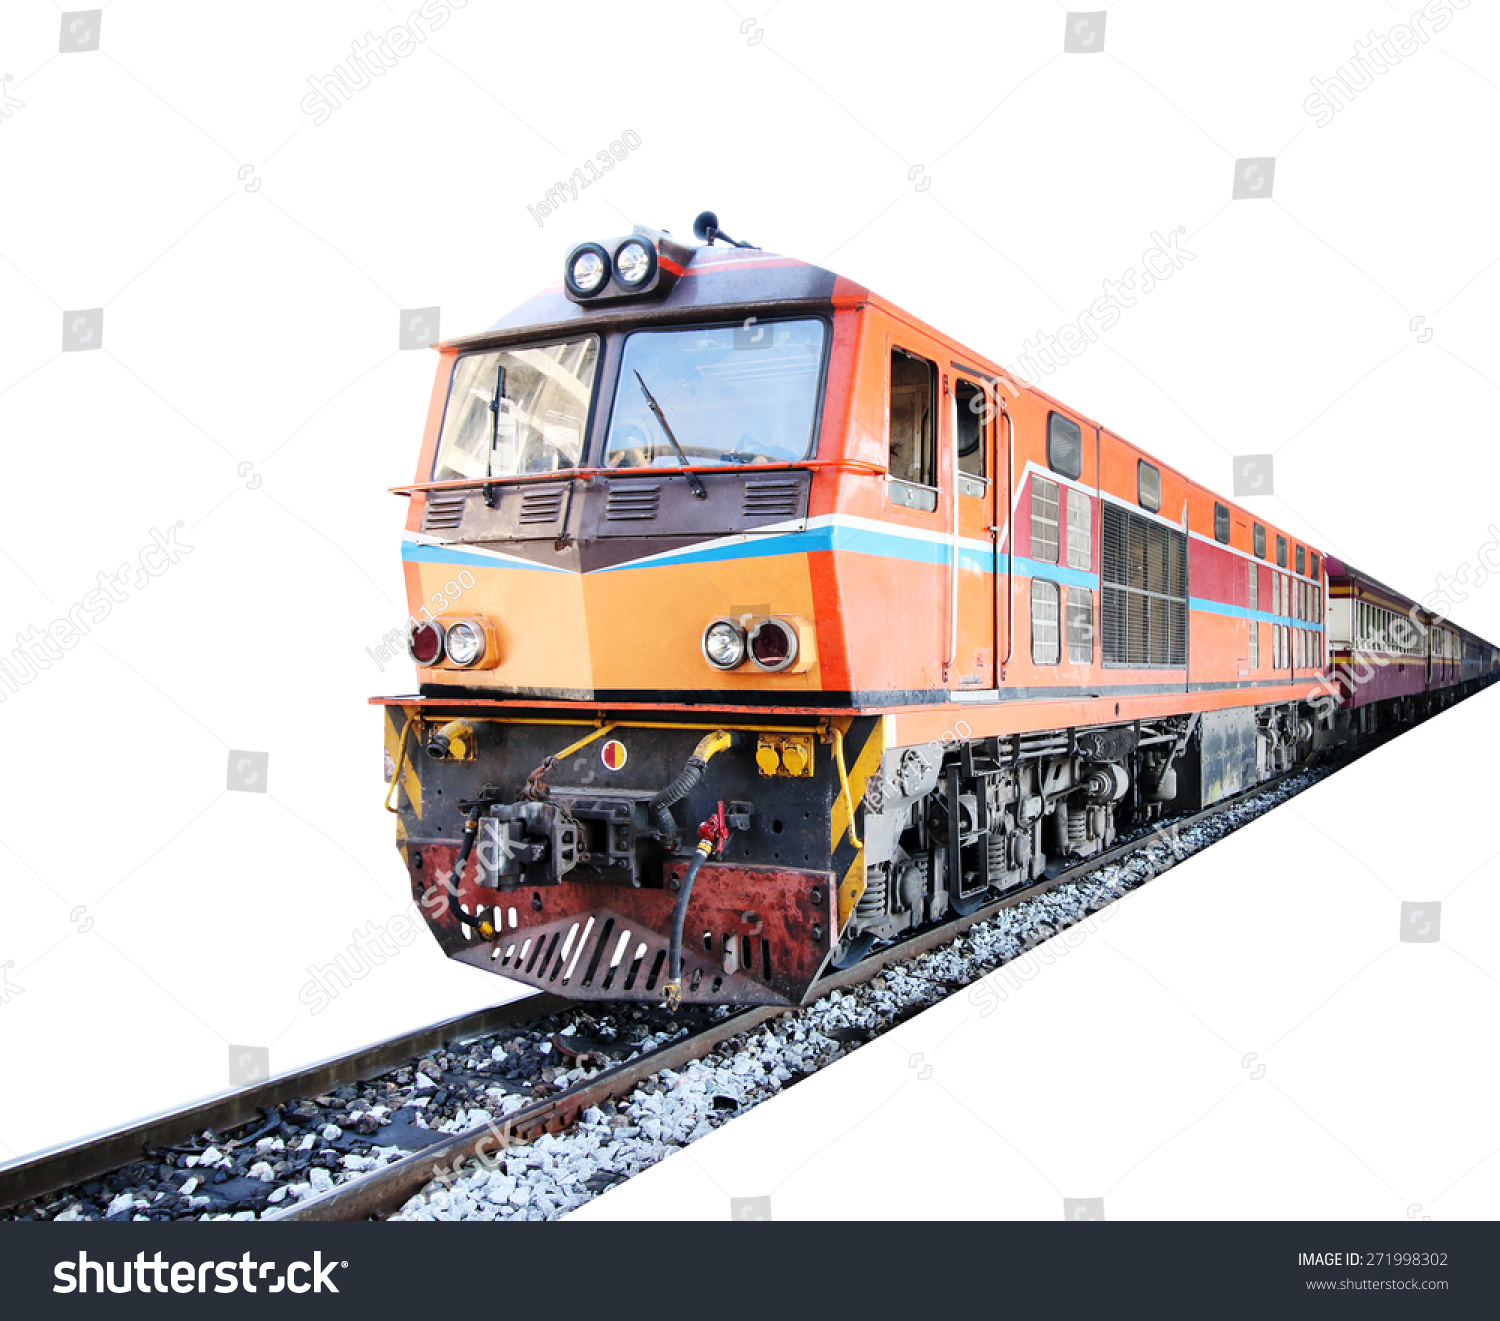 Wallpapers Of Trains: Train , Isolated On White Background Stock Photo 271998302